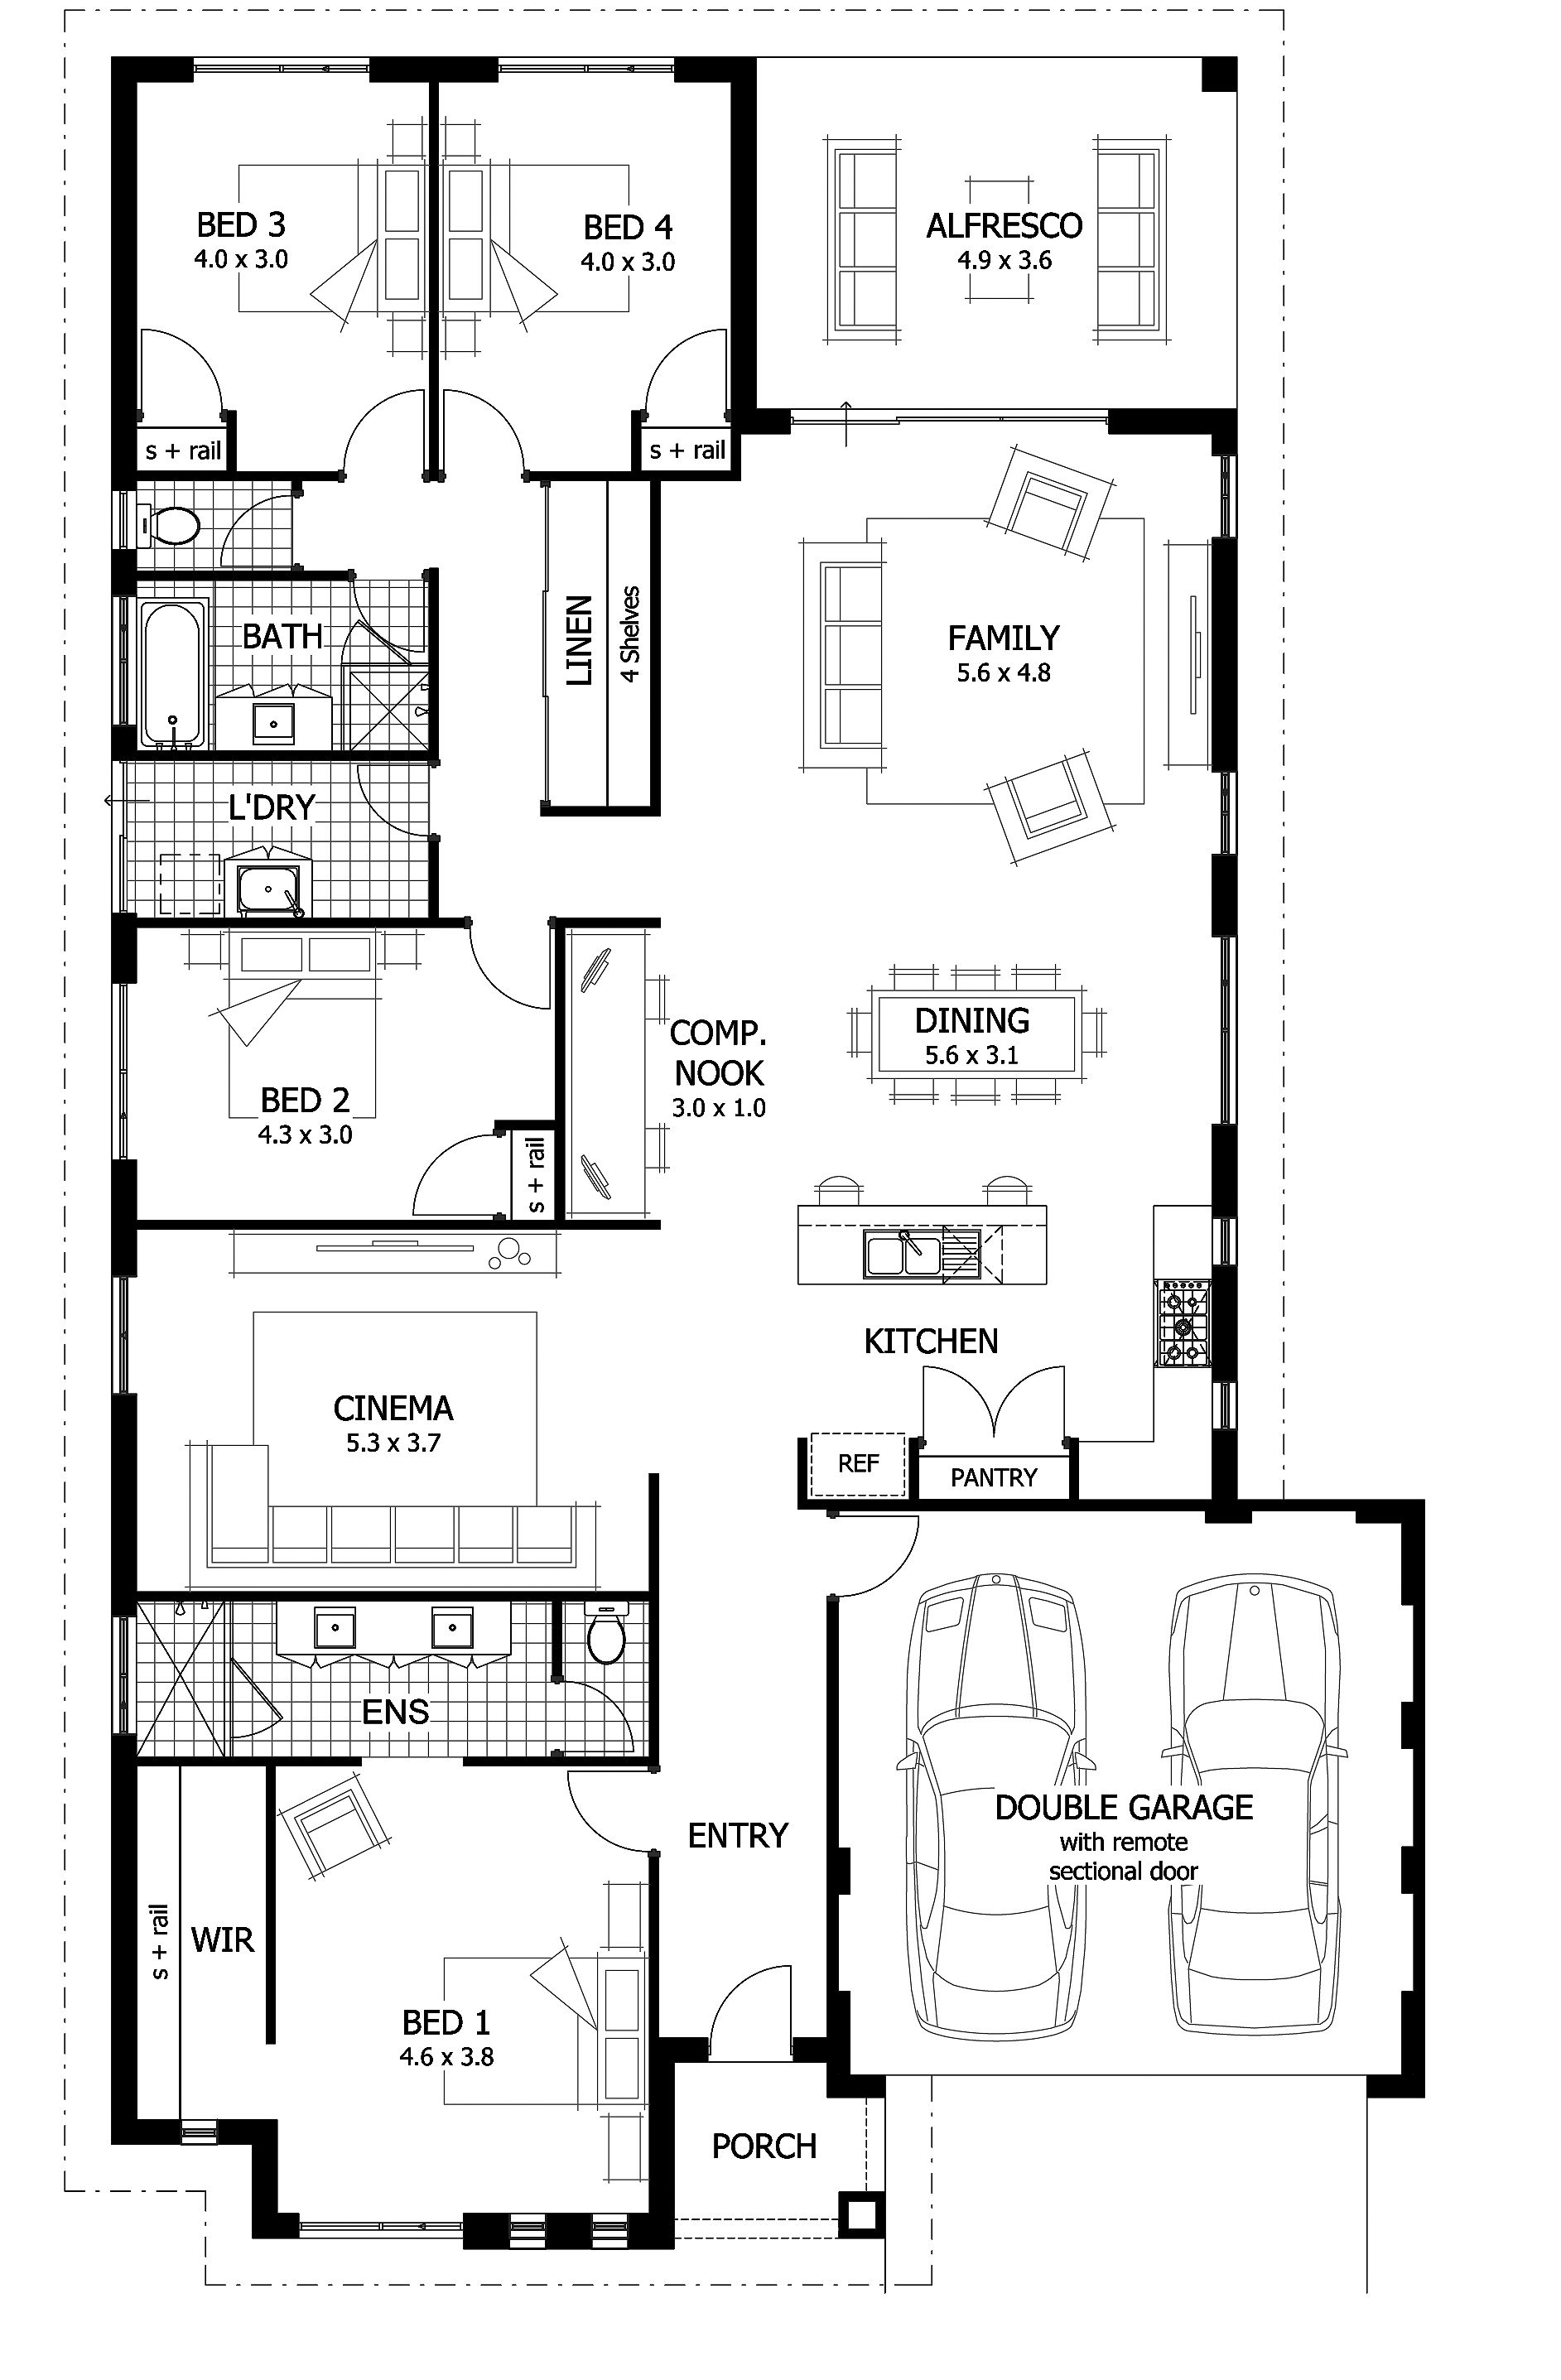 Hepburn Alfresco Rh Jpg 1885 2874 House Plans Australia Home Design Floor Plans Australian House Plans